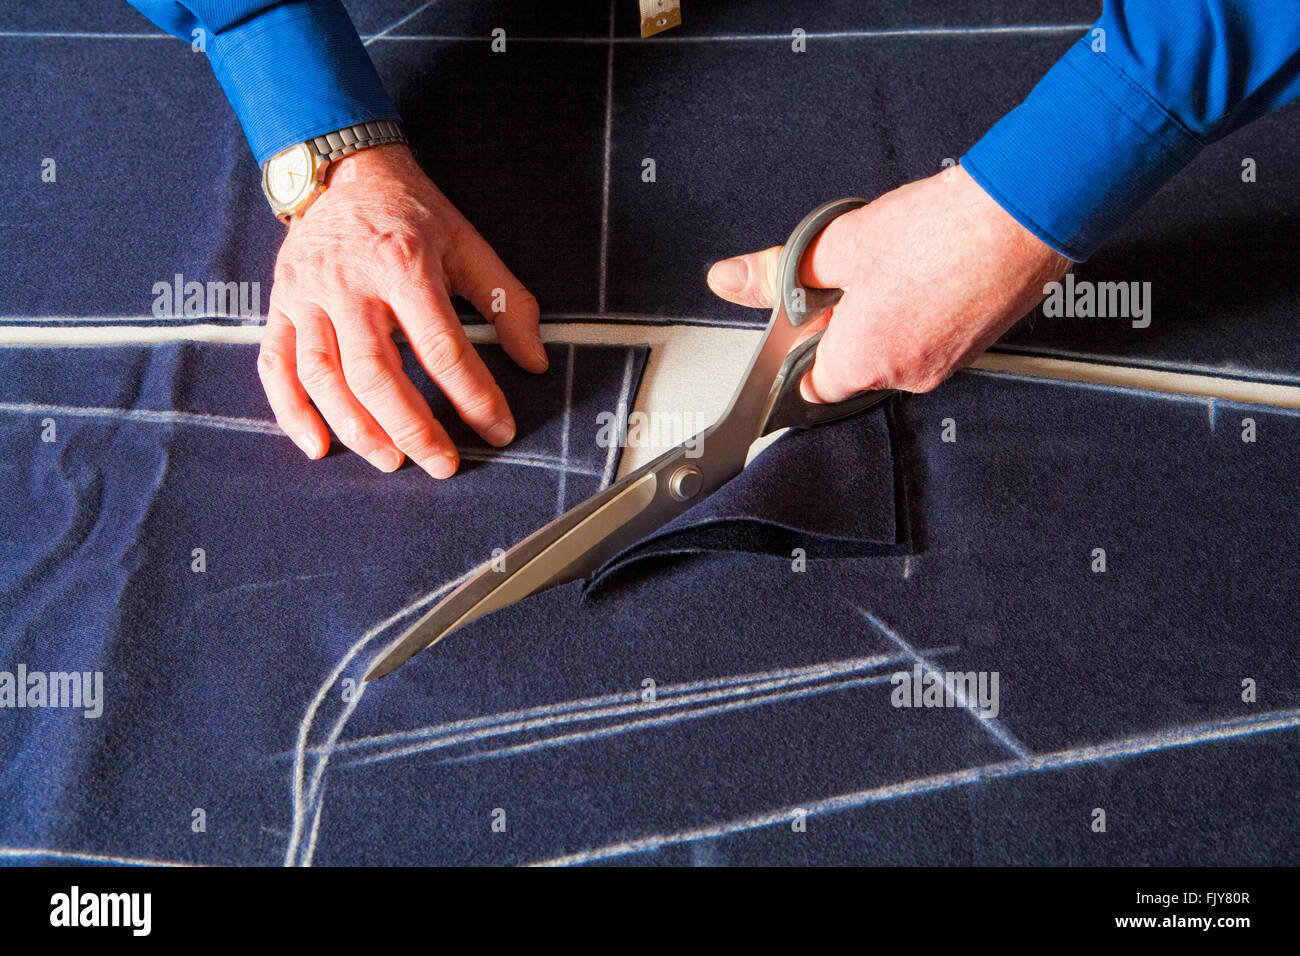 Tailor Cutting Fabric to a New Coat with Scissors. - Stock Image